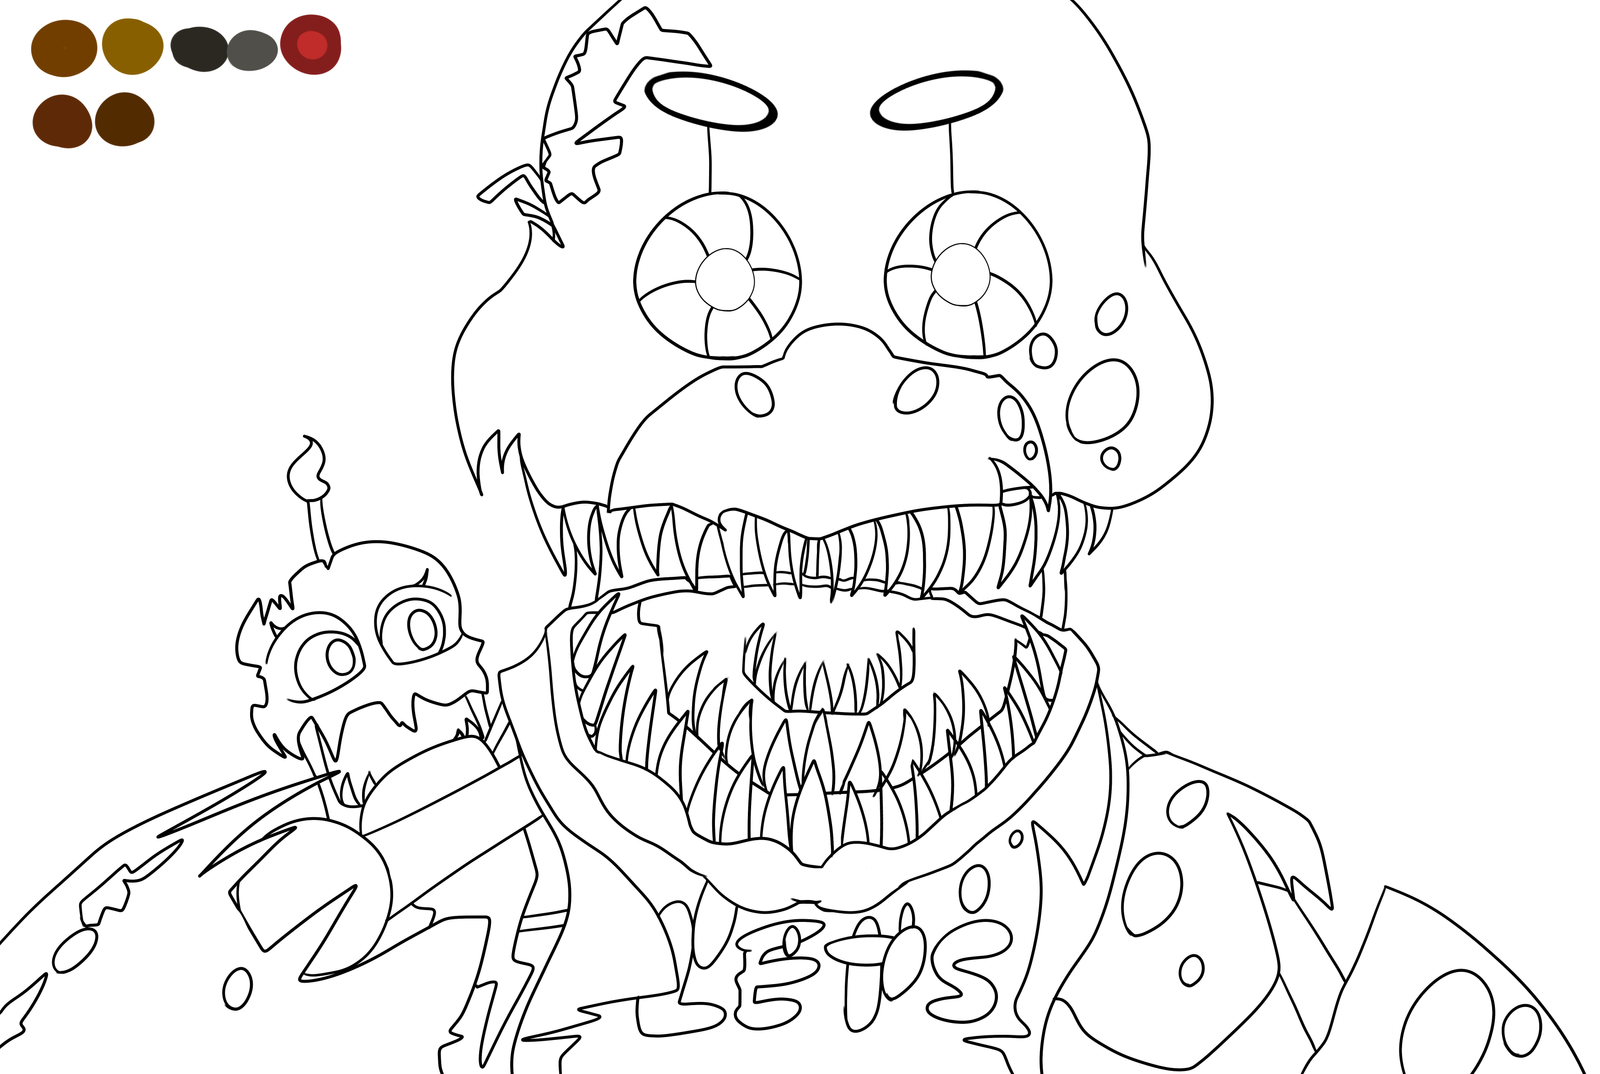 Nightmare chica outline by spaceponyarts on deviantart for Fnaf coloring pages nightmare